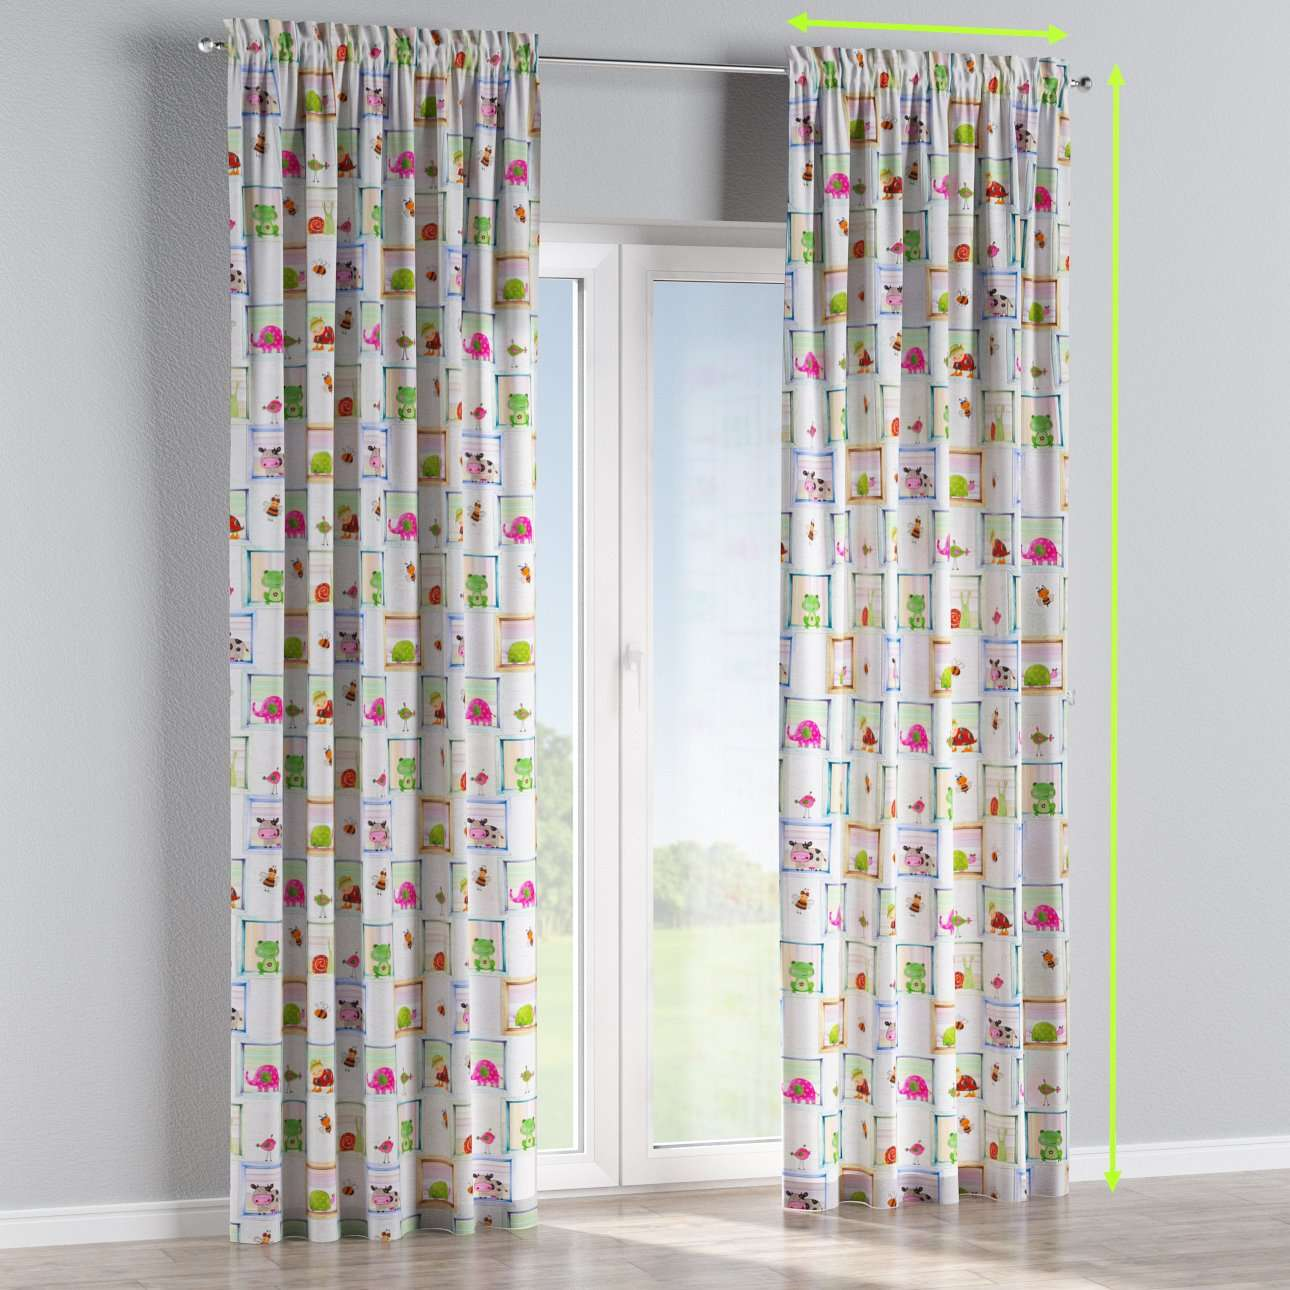 Slot and frill lined curtains in collection Apanona, fabric: 151-04